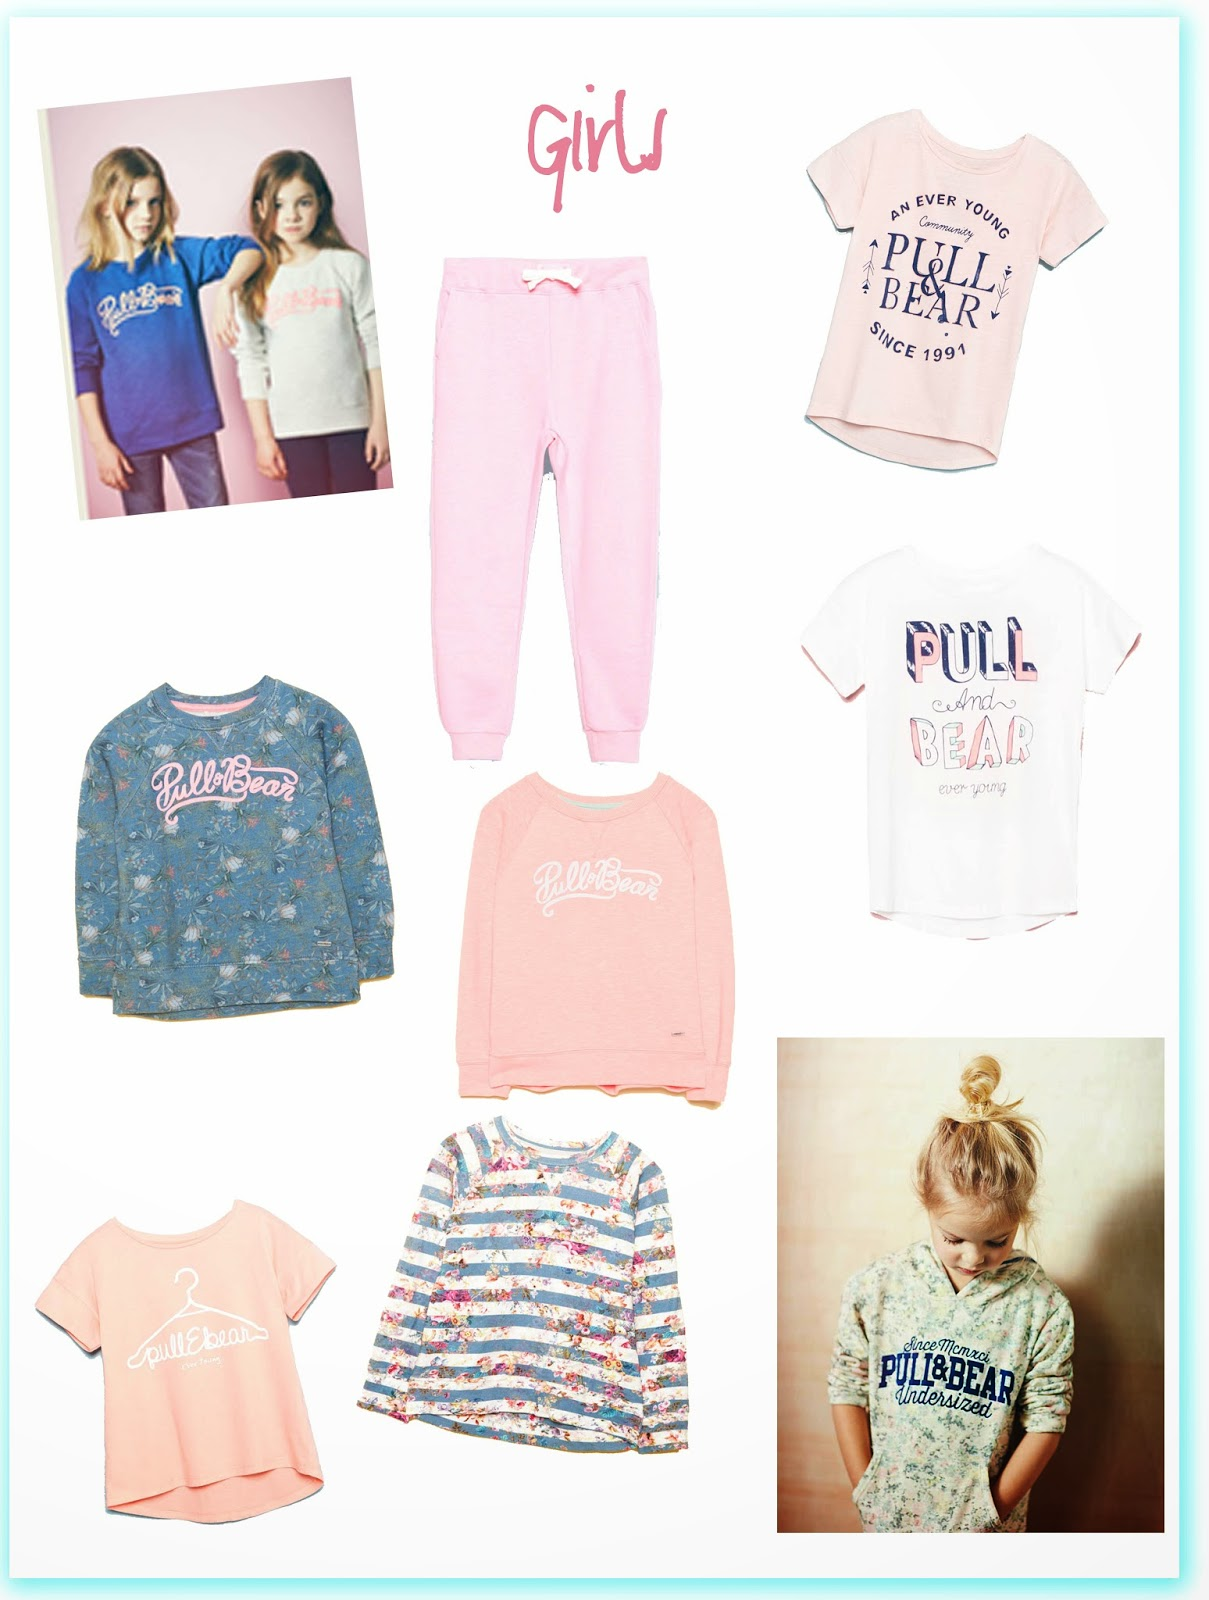 photo_pullandbear_kids_news_pv14